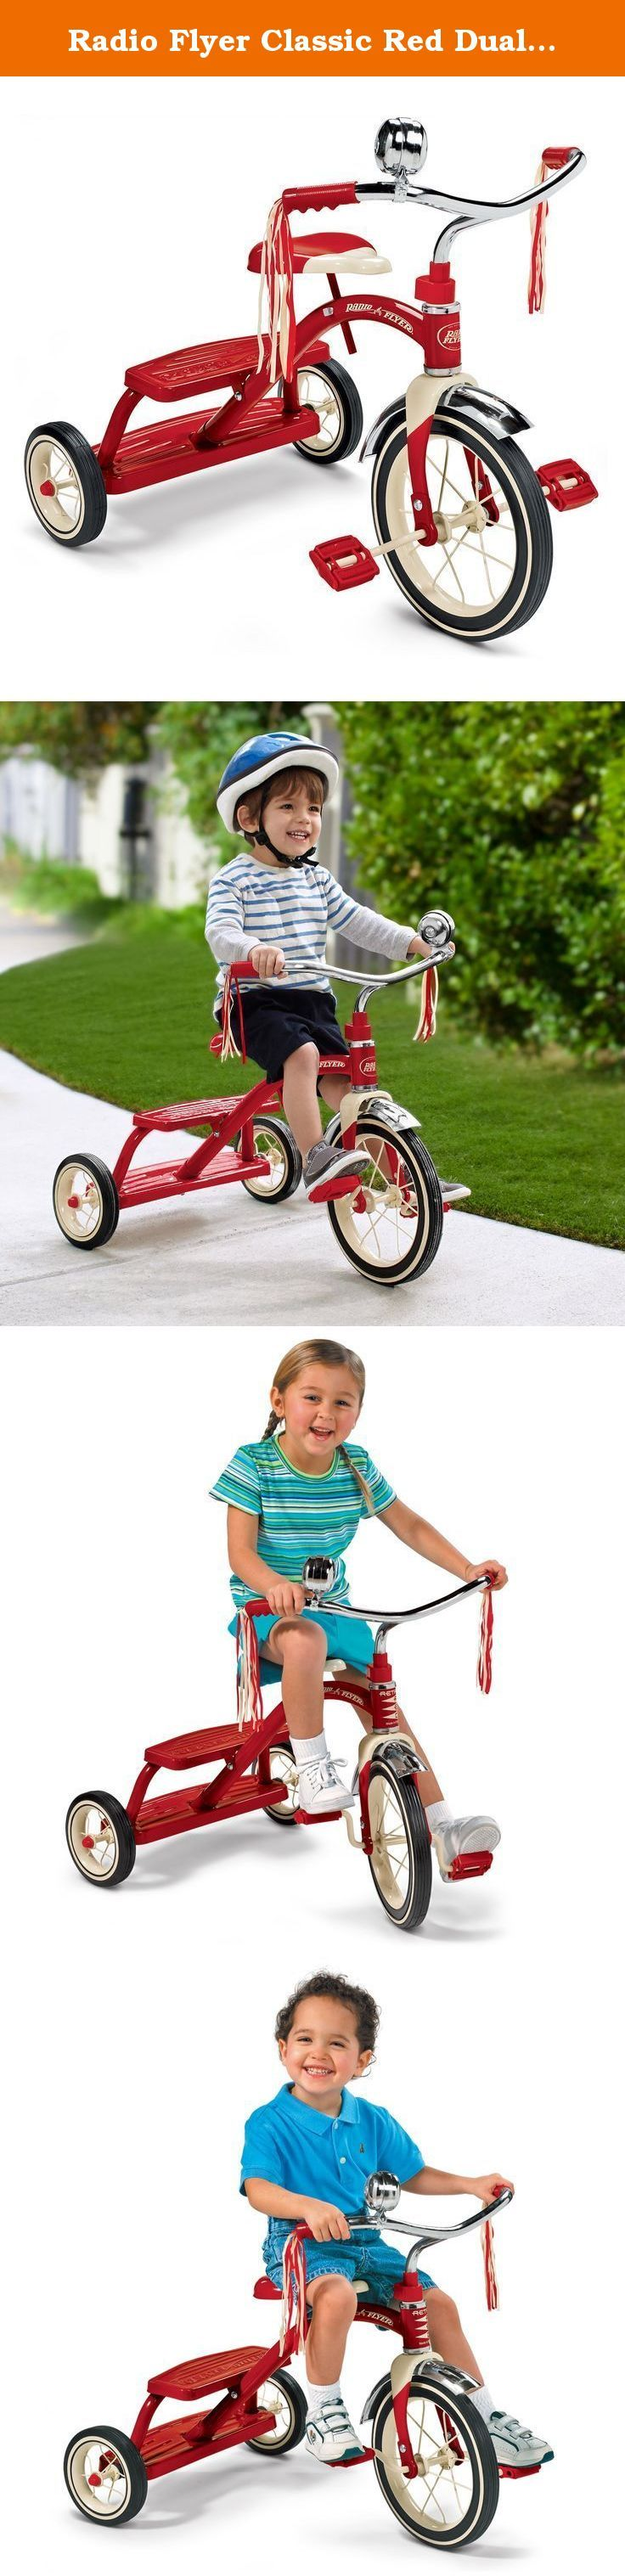 """Radio Flyer Classic Red Dual Deck Tricycle. 12"""", classic Red tricycle, Retro styling, sturdy steel construction , steel spoked wheels with real rubber tires, working Bell, double deck rear step, easy assembly, body 31-5/8 x 24-1/2 x 21-5/8, ages 2-1/2 to 5."""